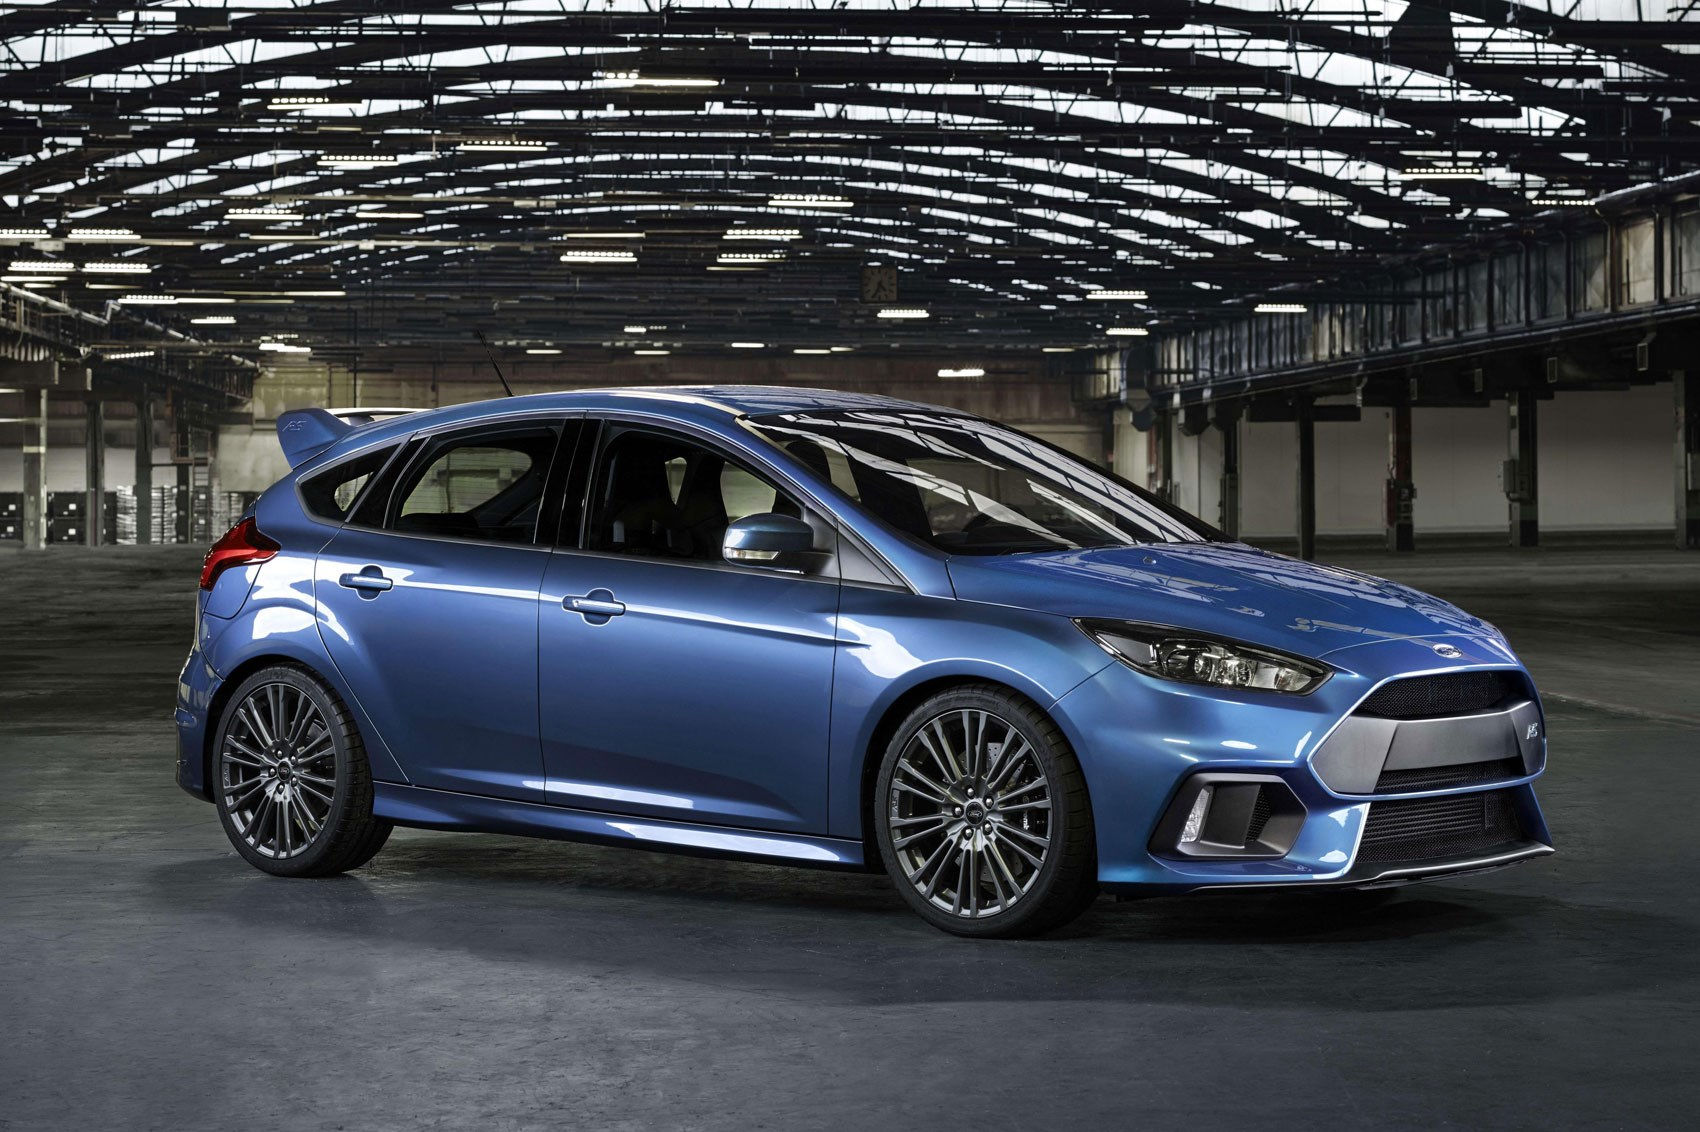 specs cars focus rs ford co za news motoring price